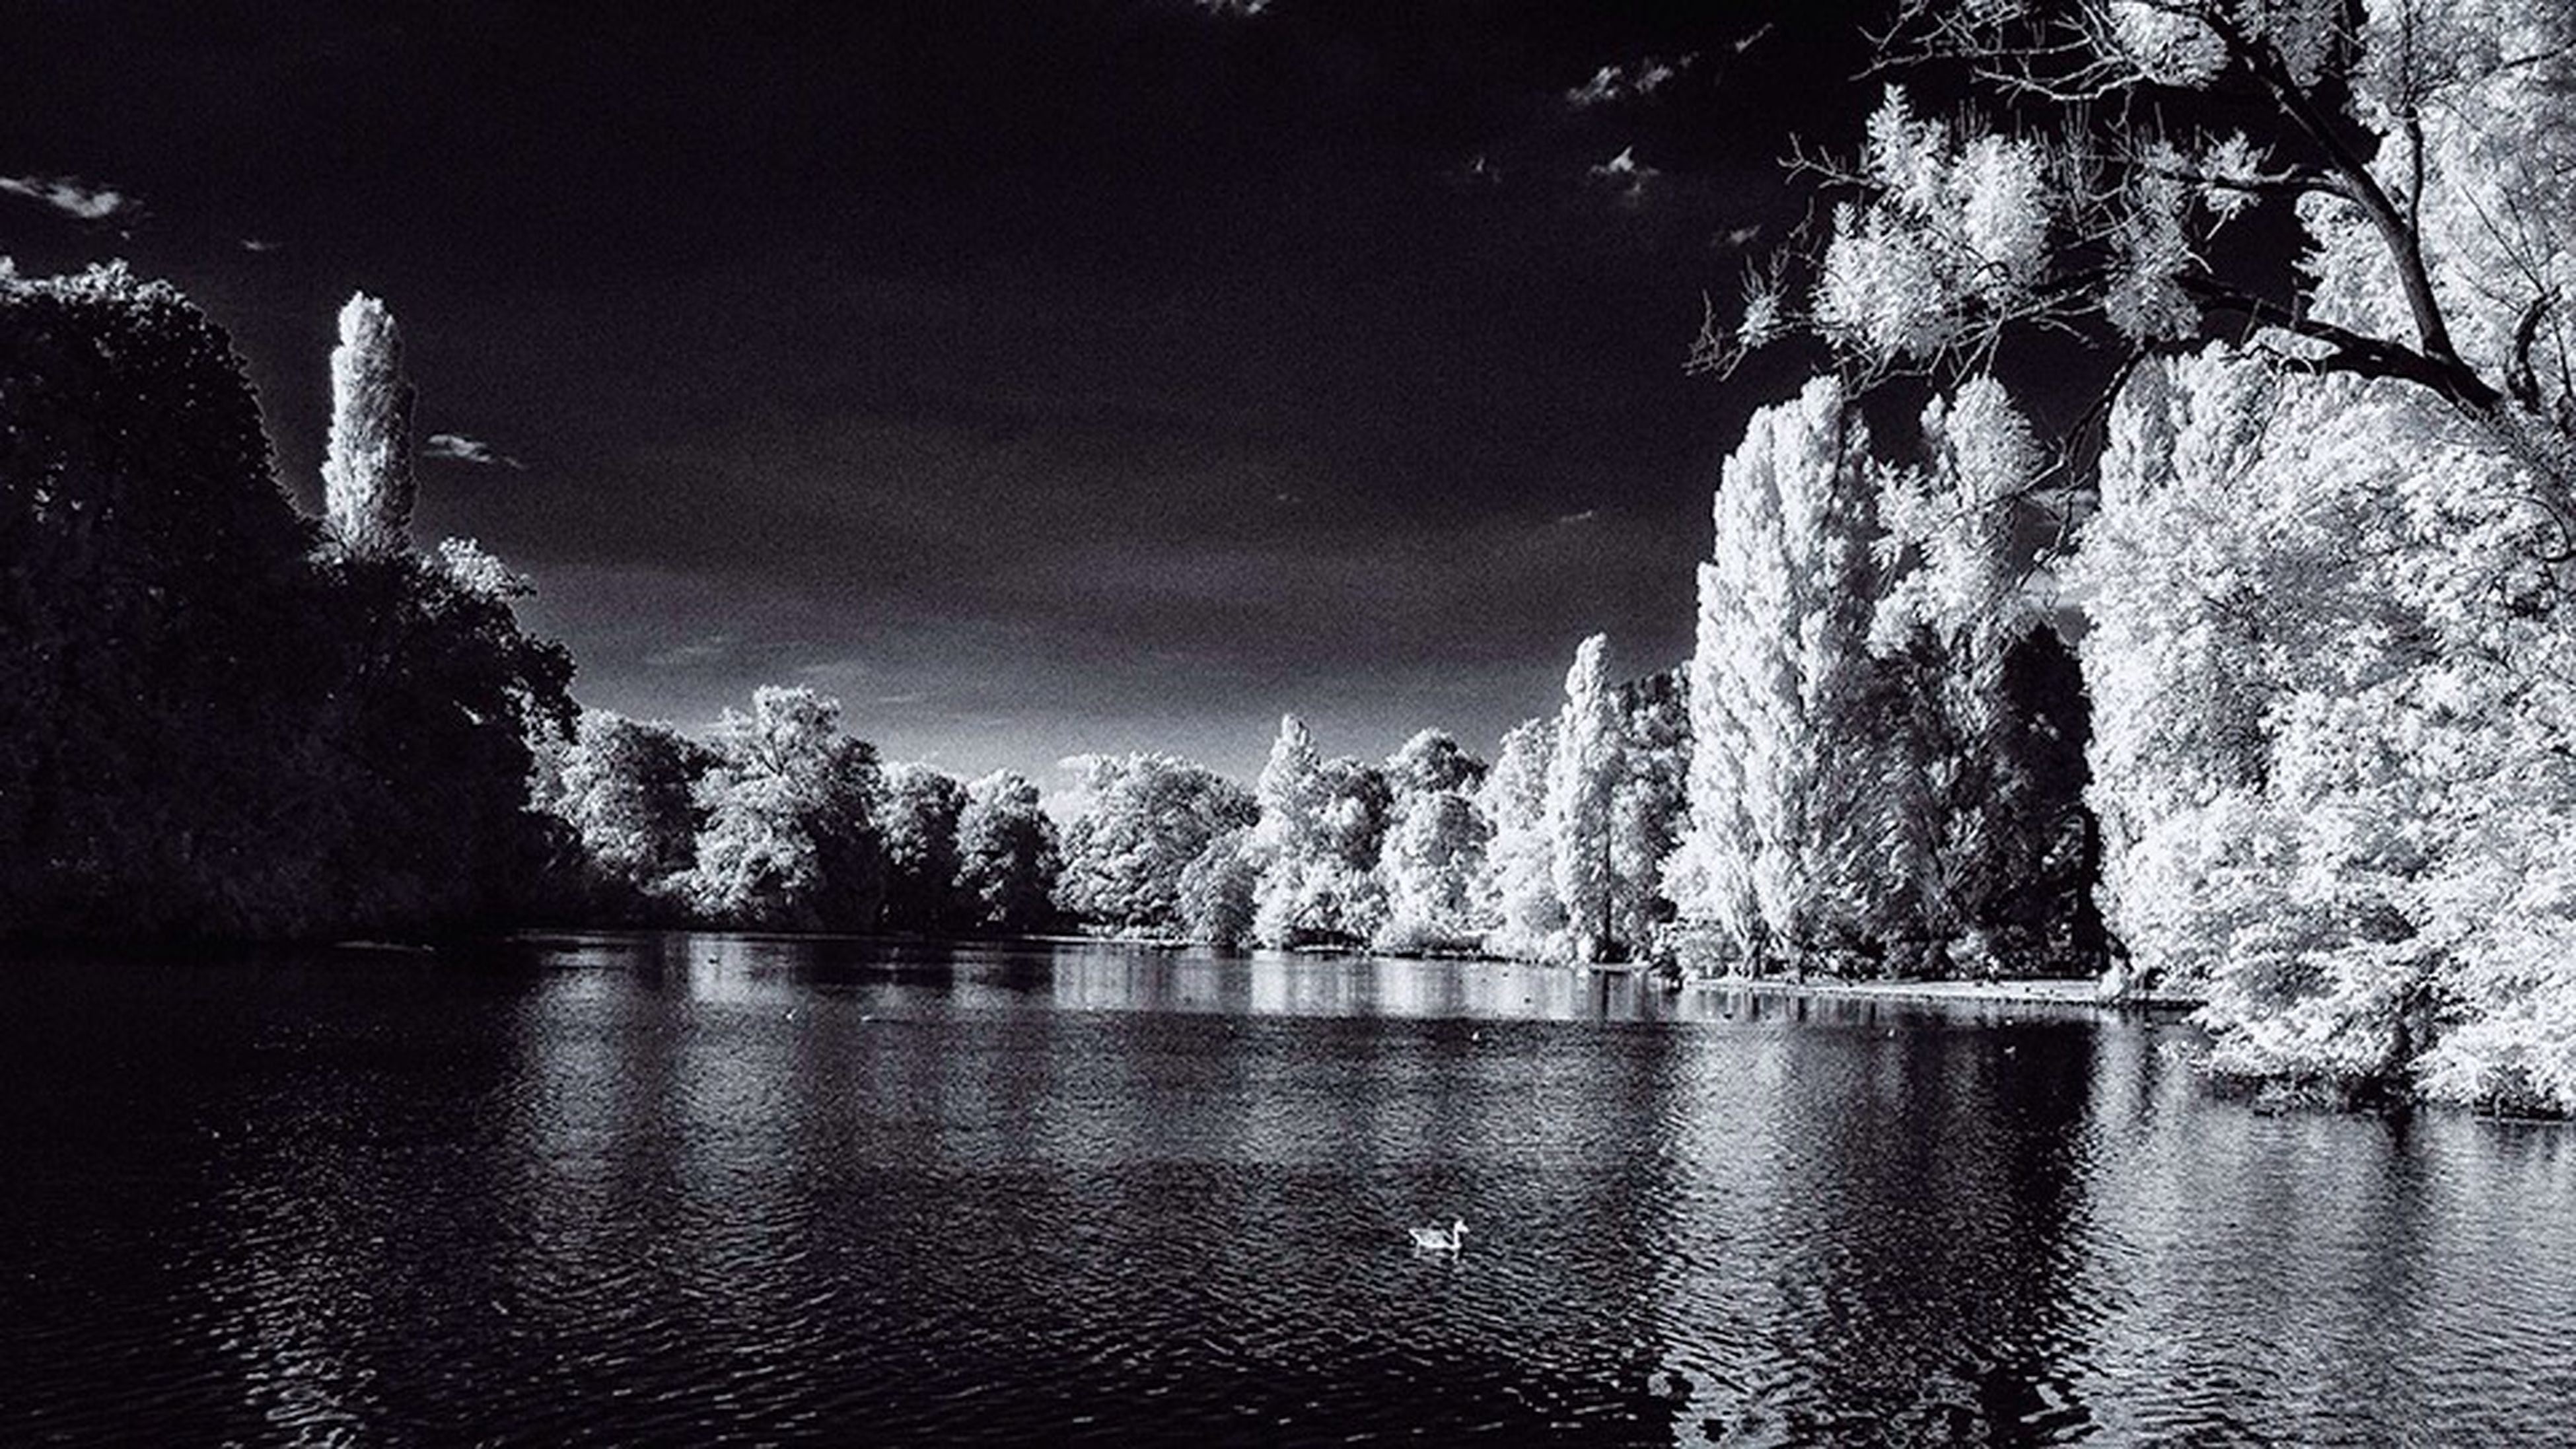 water, tree, nature, reflection, sky, no people, tranquility, growth, beauty in nature, outdoors, lake, scenics, night